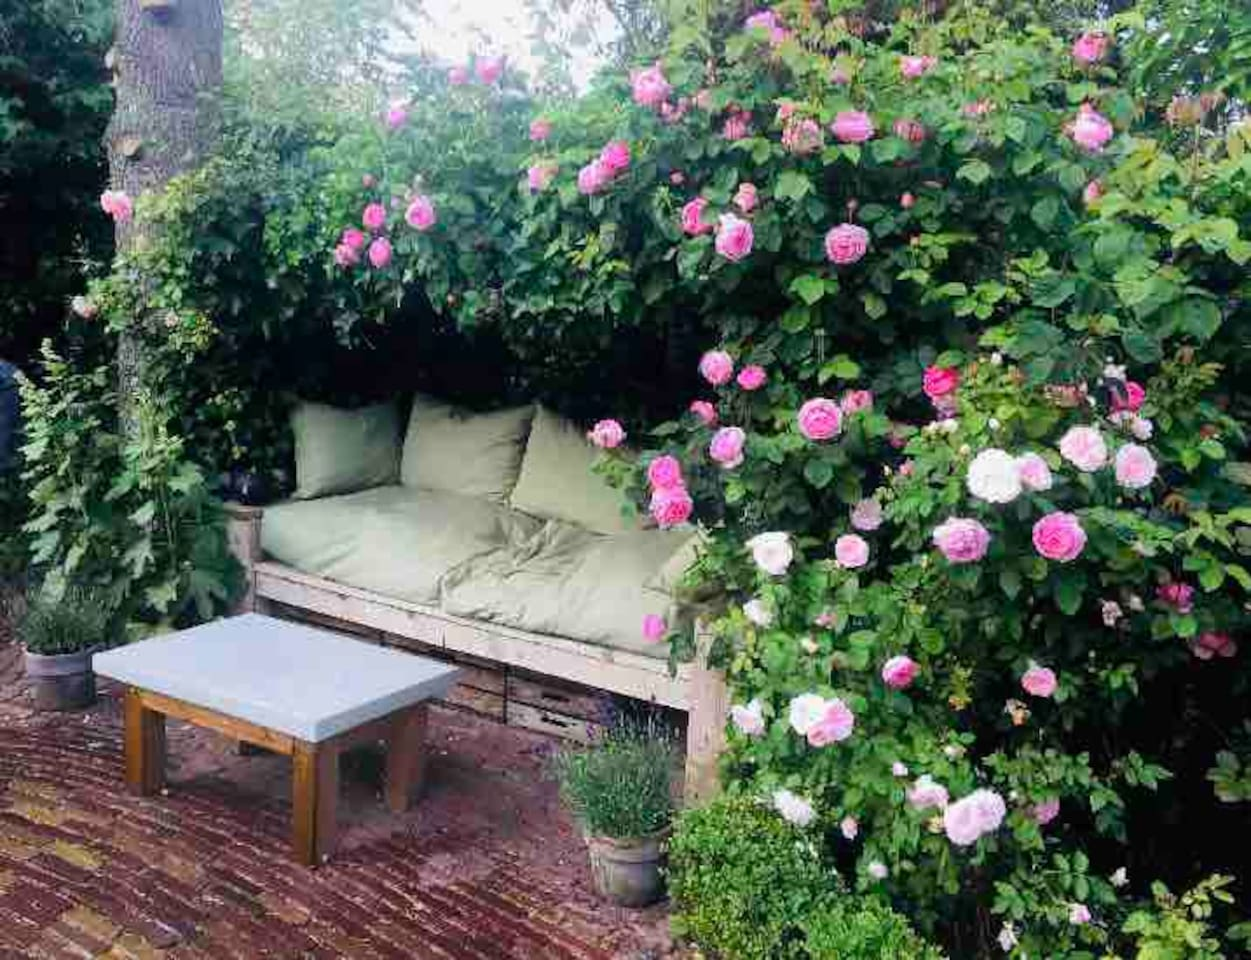 Back garden with romantic seat